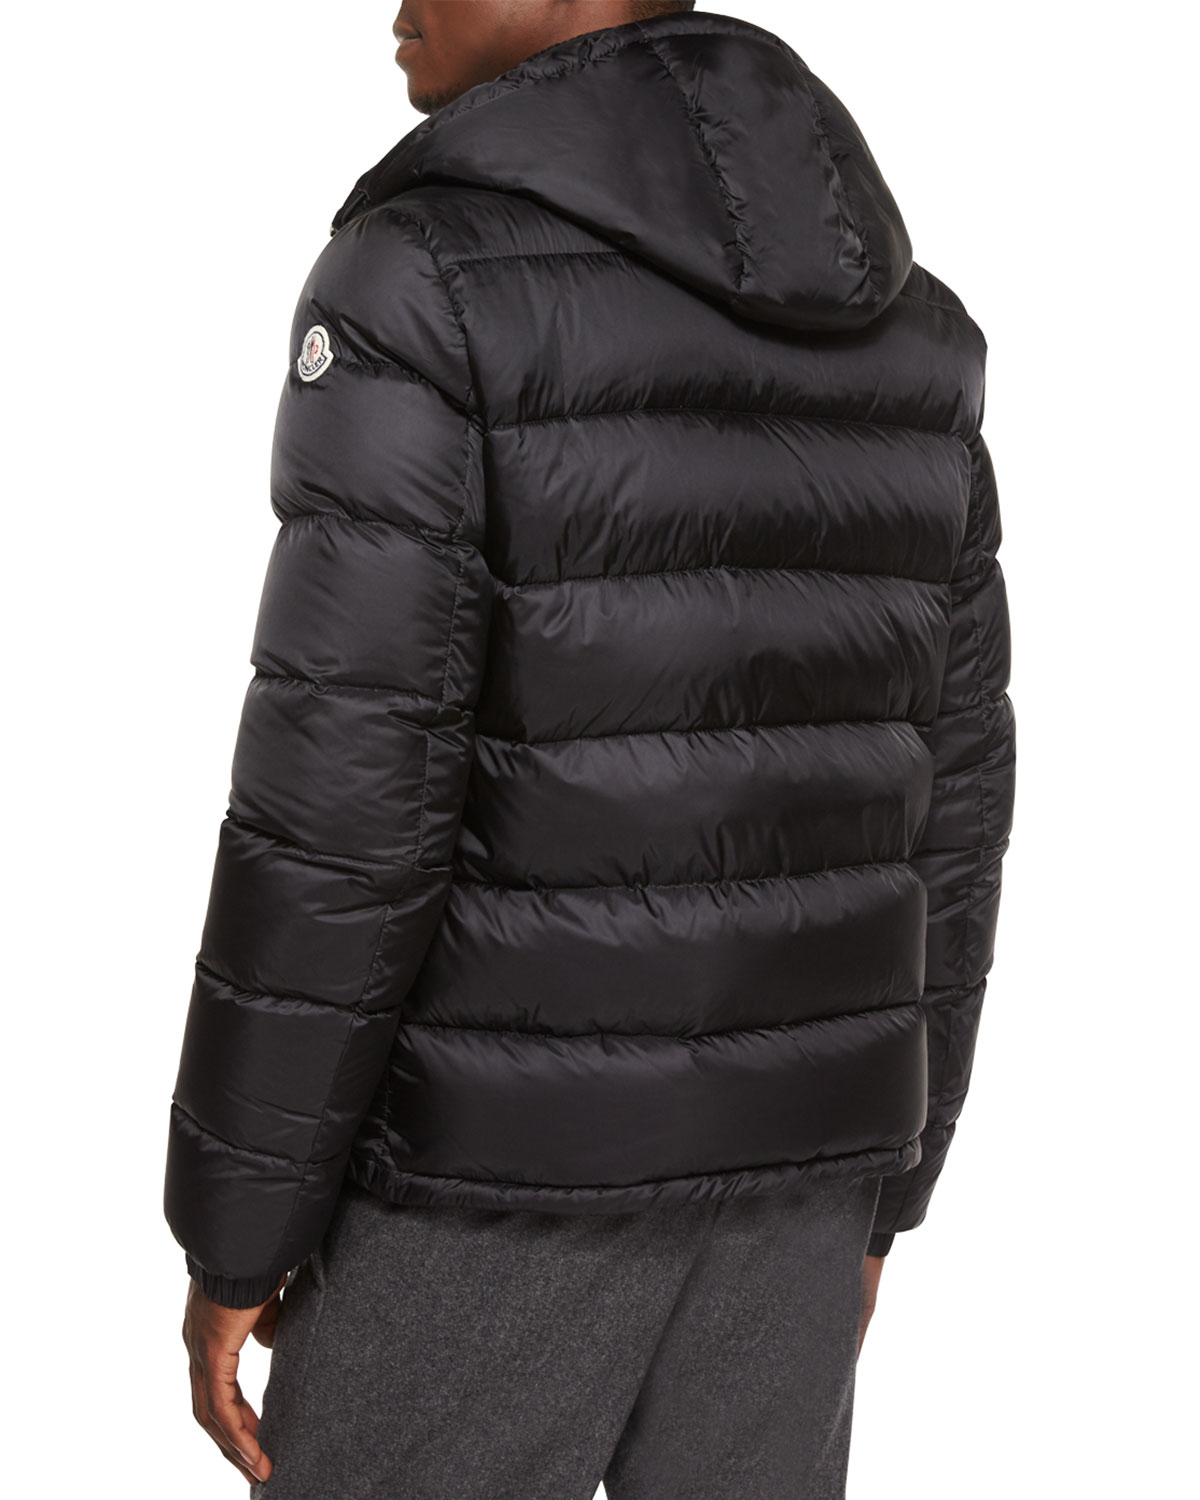 Moncler Demar Quilted Puffer Jacket In Black For Men Lyst